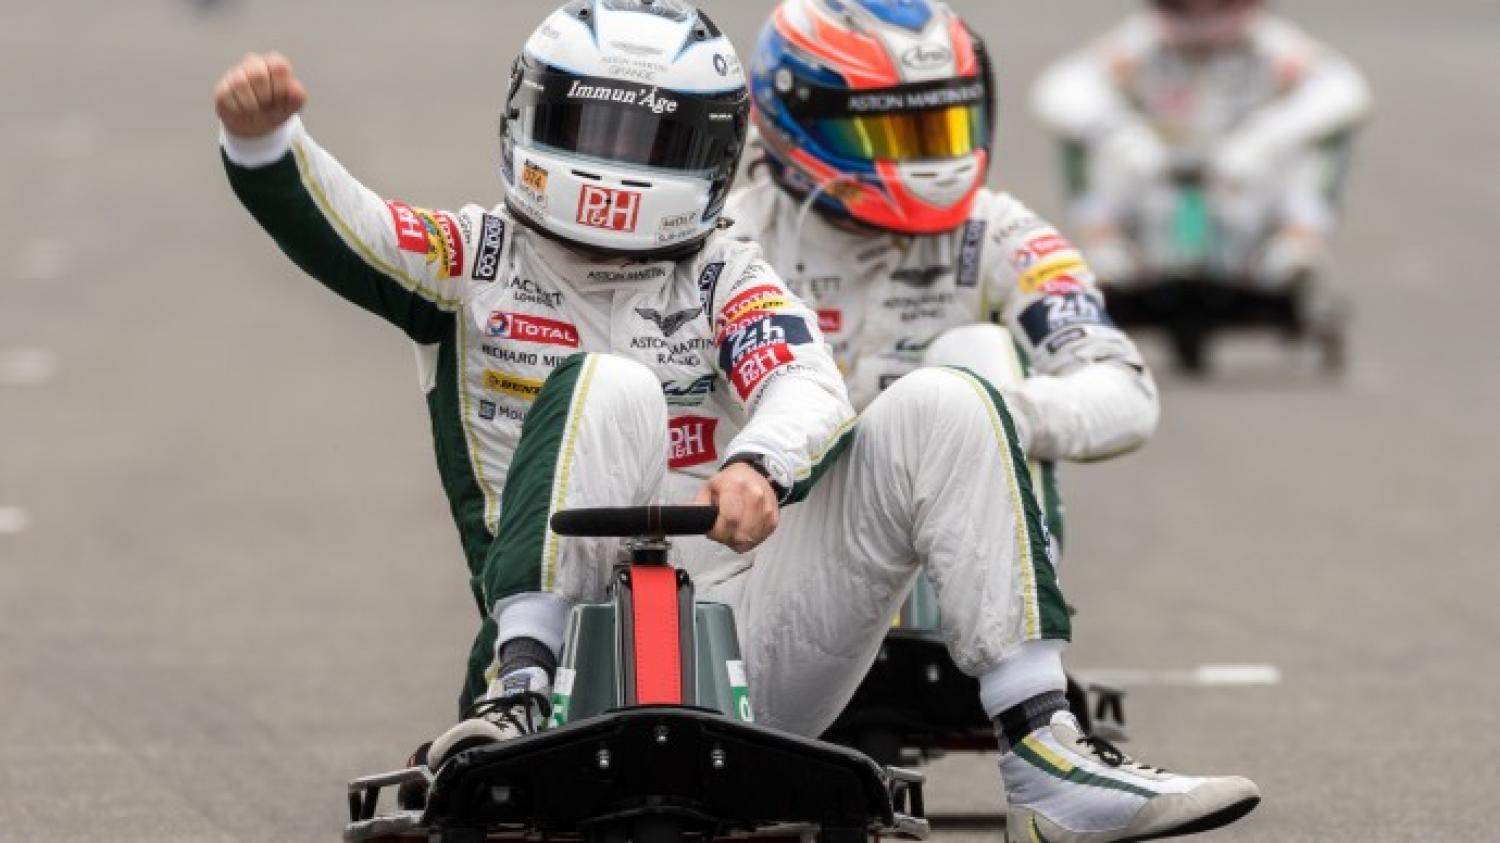 The Aston Martin drivers in their own Crazy Cart race!